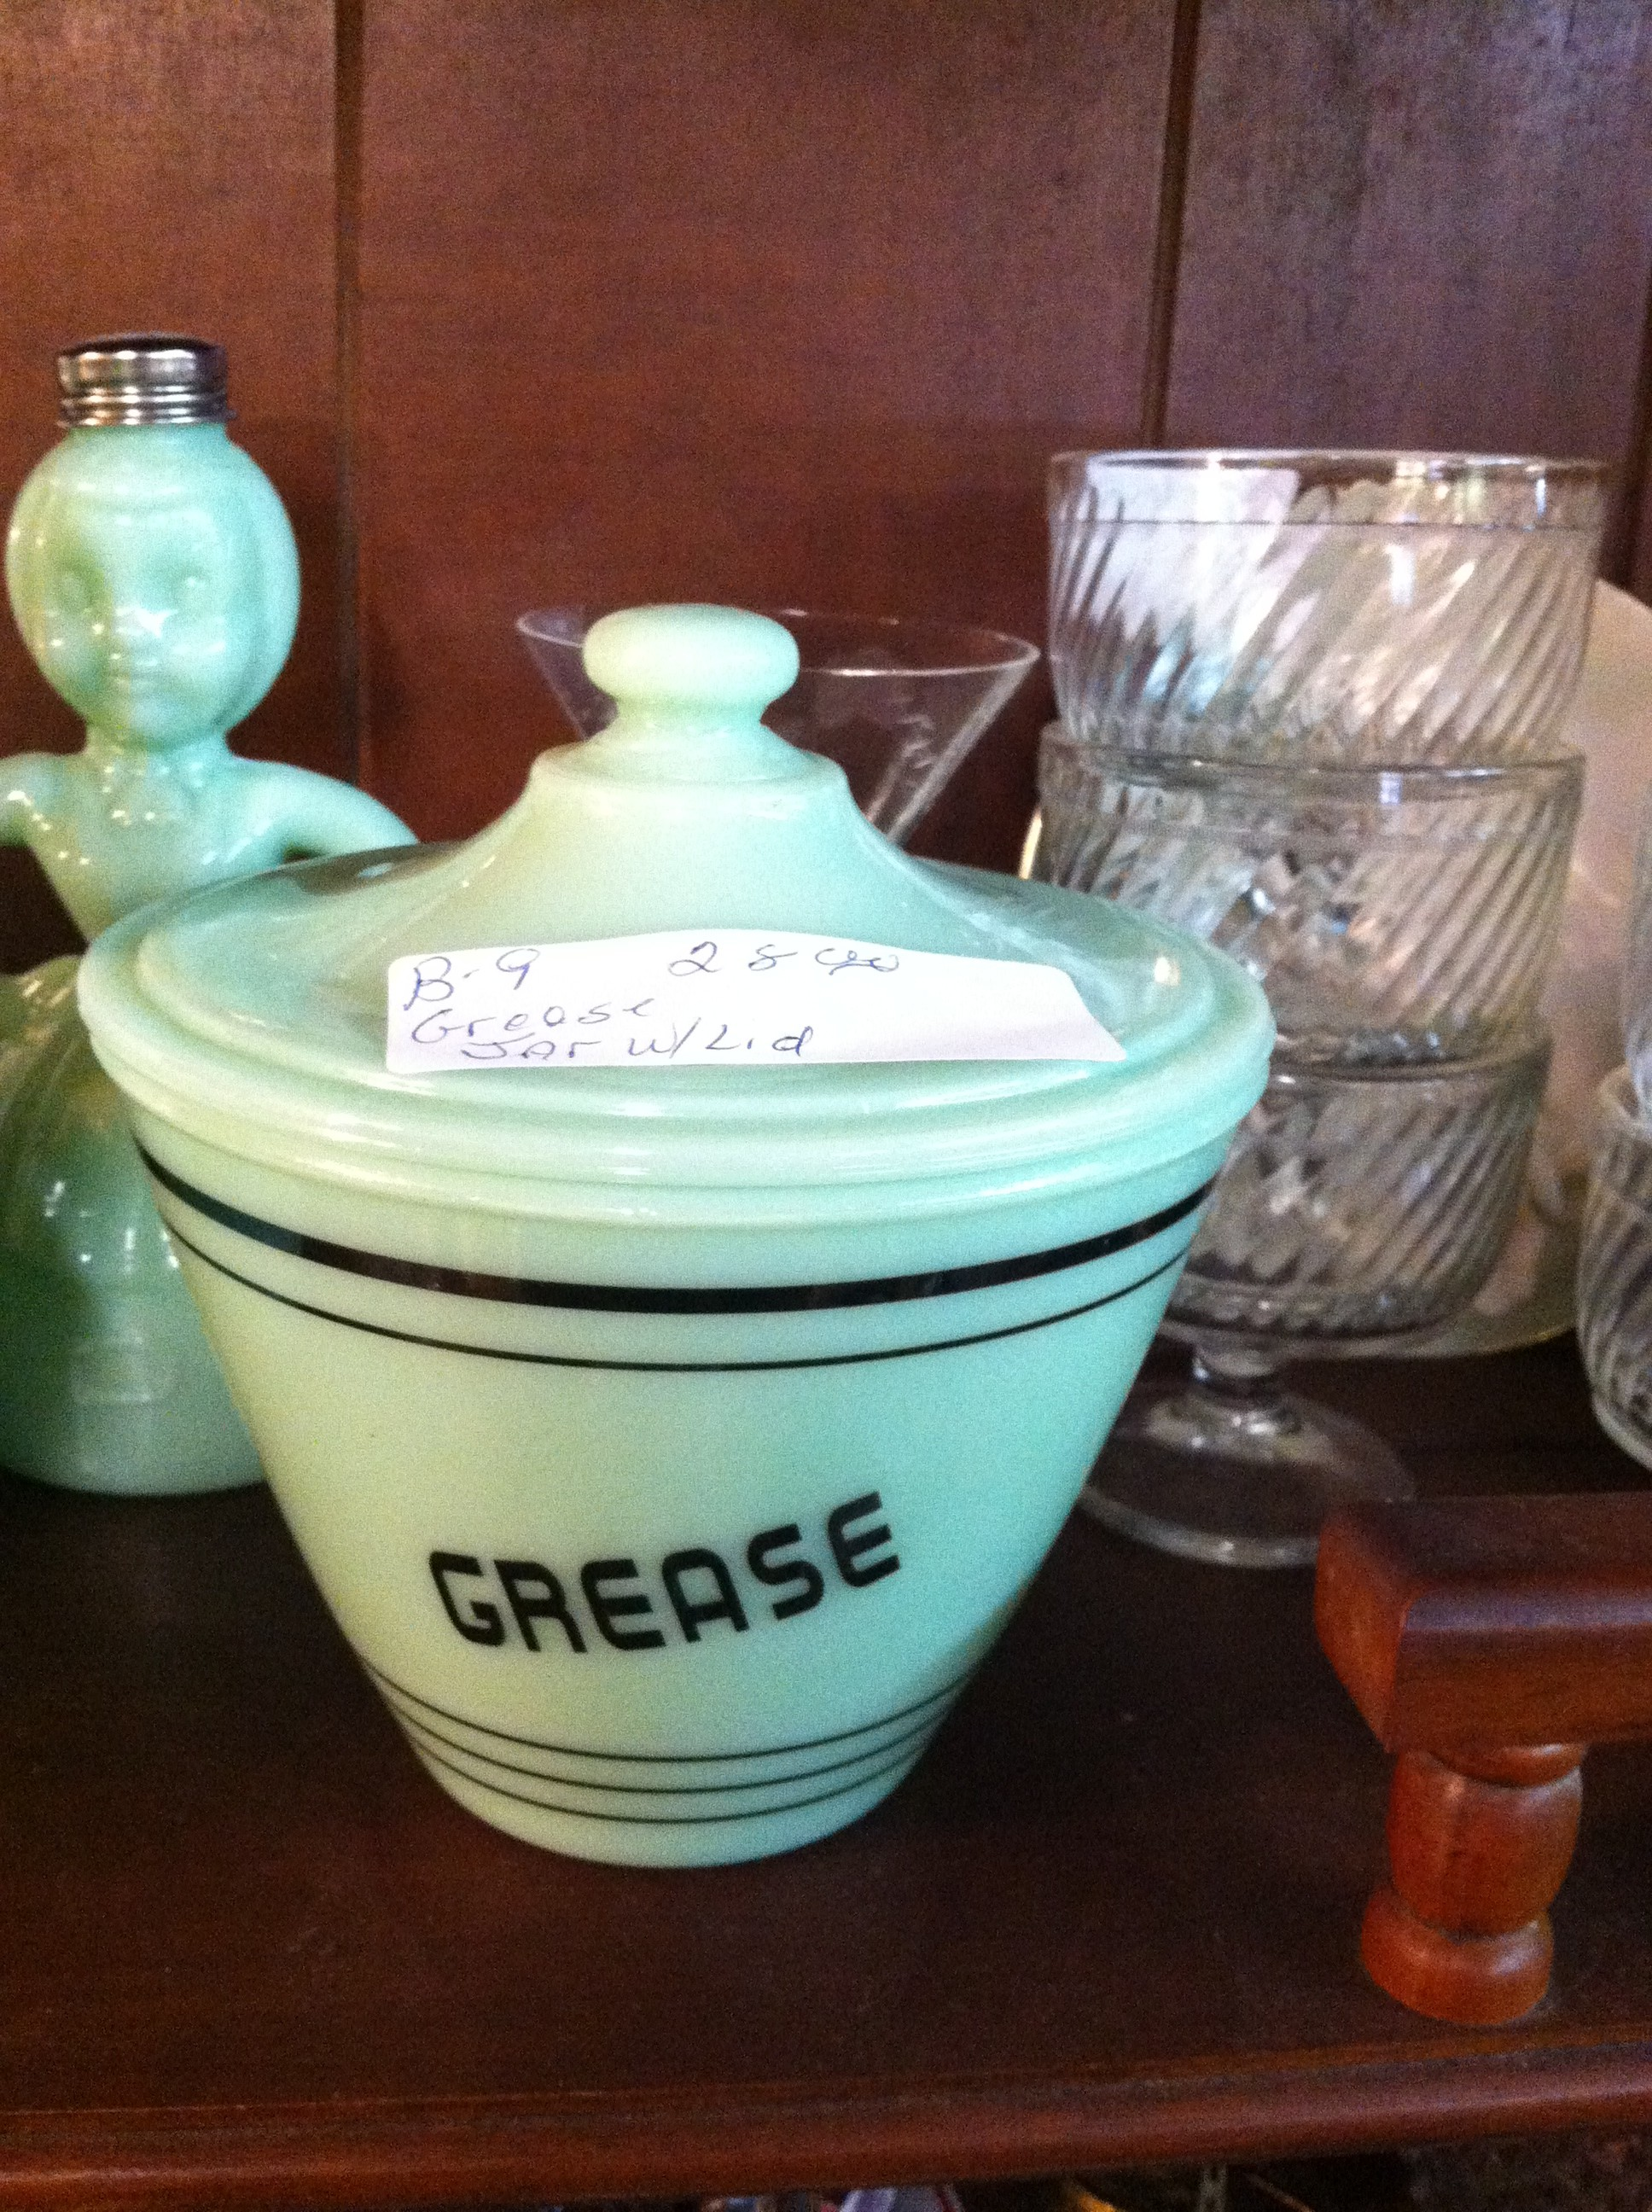 A tight shot of jadeite Grease jar from Tennessee thrift shop